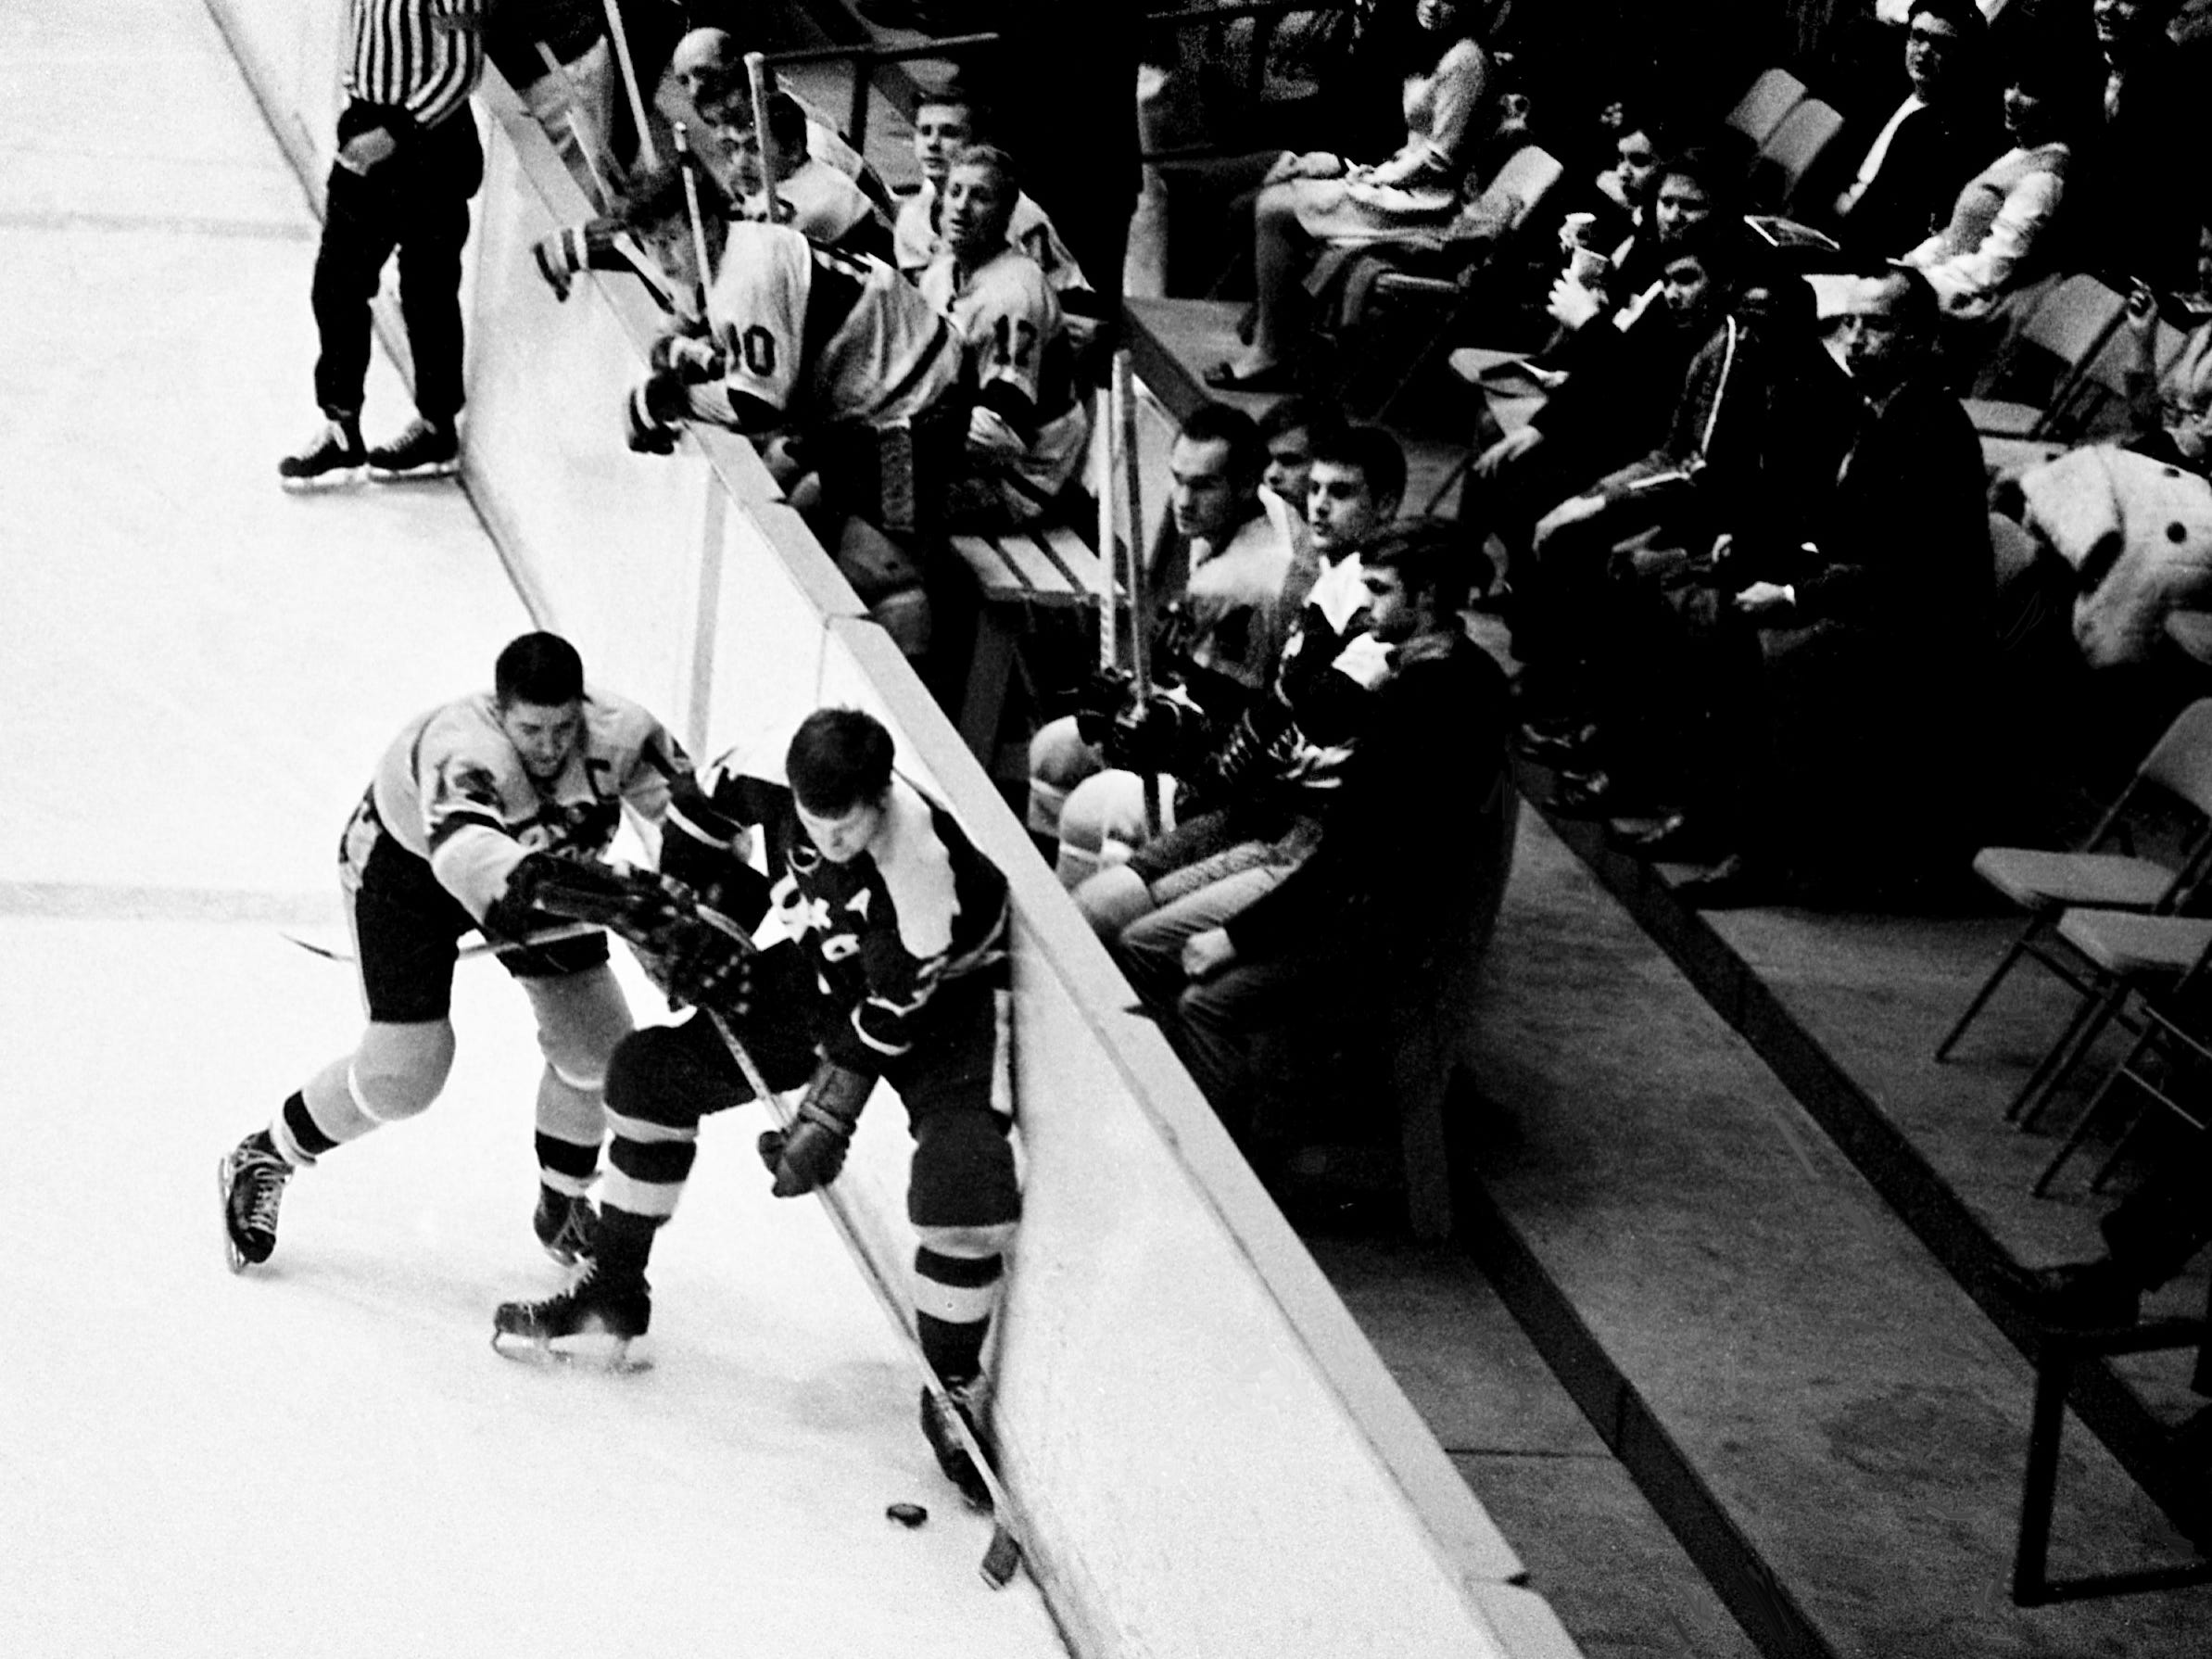 With his teammates looking on from the bench, Nashville Dixie Flyers captain Wayne Clairmont (14) goes into the boards to battle Johnstown Jets' Dick Paradise (3) for a loose puck. The Flyers went on to check Johnstown 4-1 before 1,573 fans at Municipal Auditorium on Dec. 15, 1968.